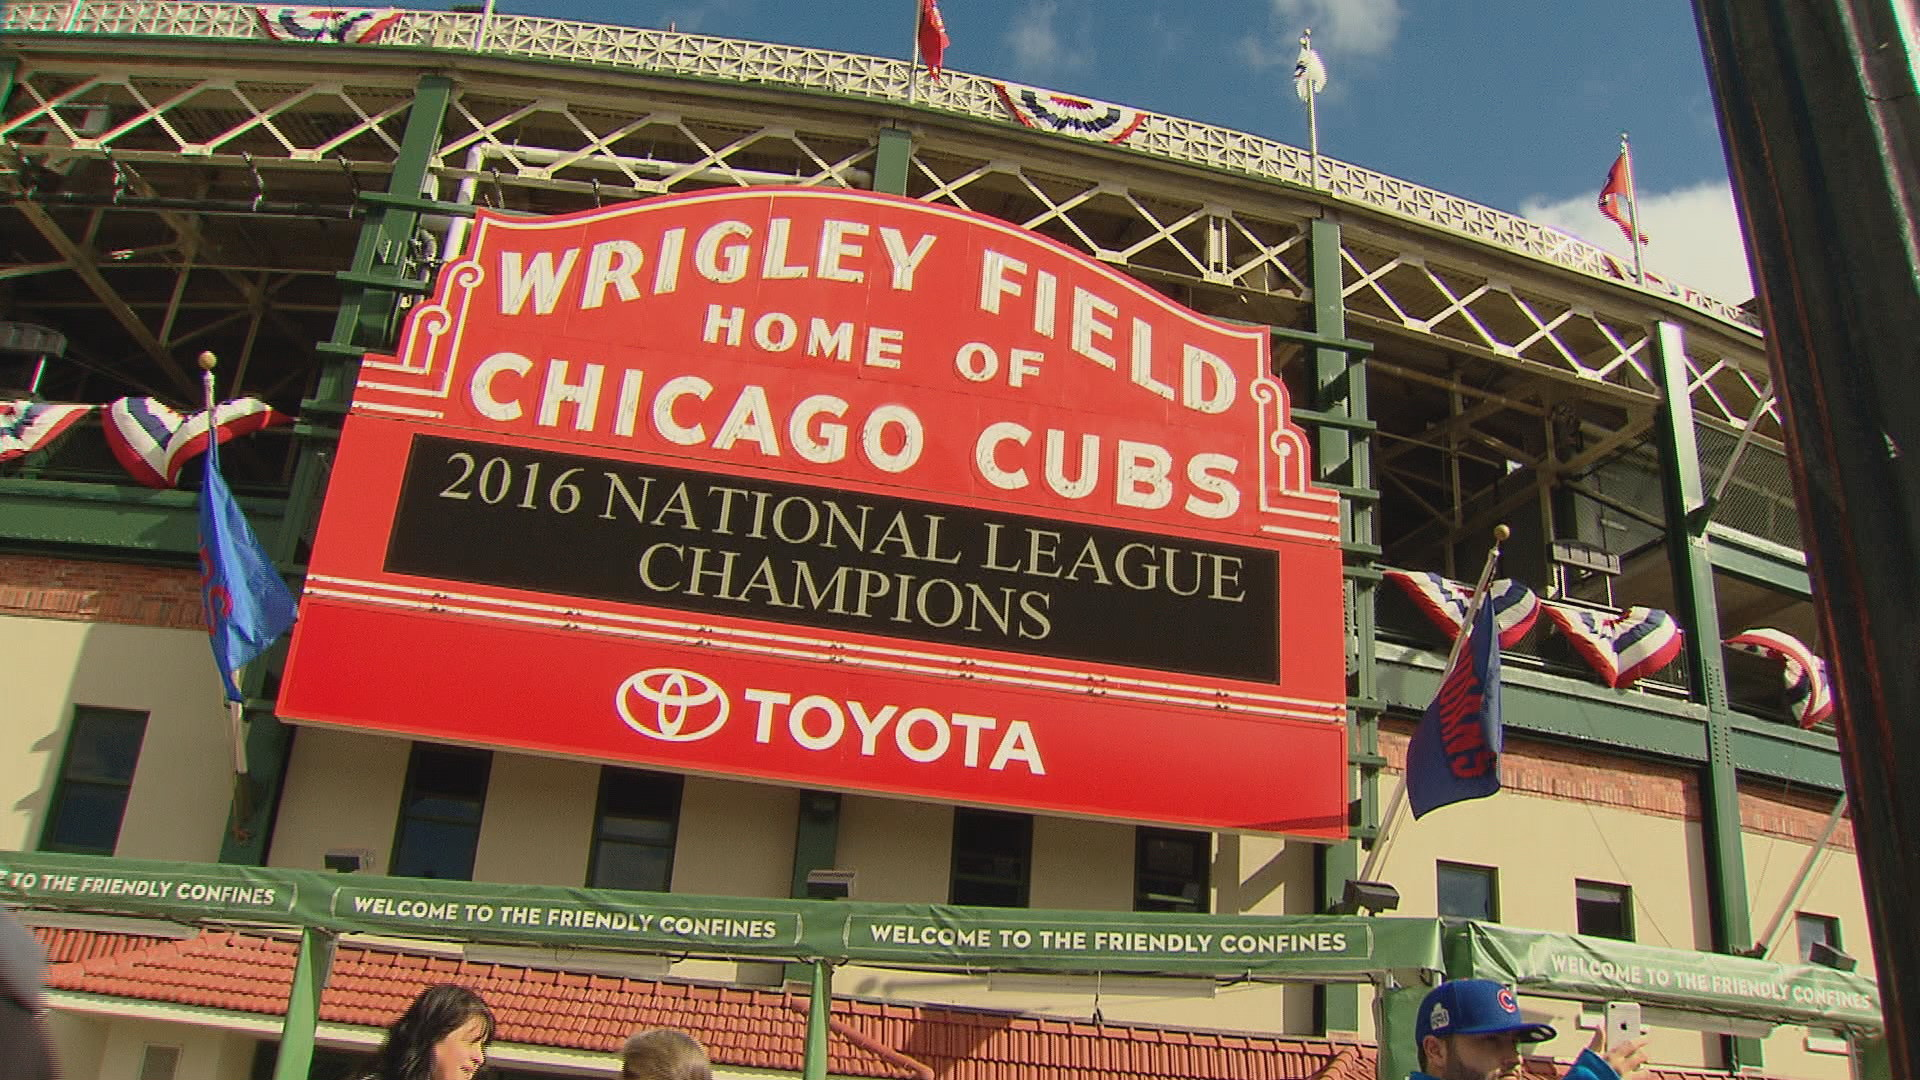 329 best images about The Chicago Cubs on Pinterest | Keep calm .